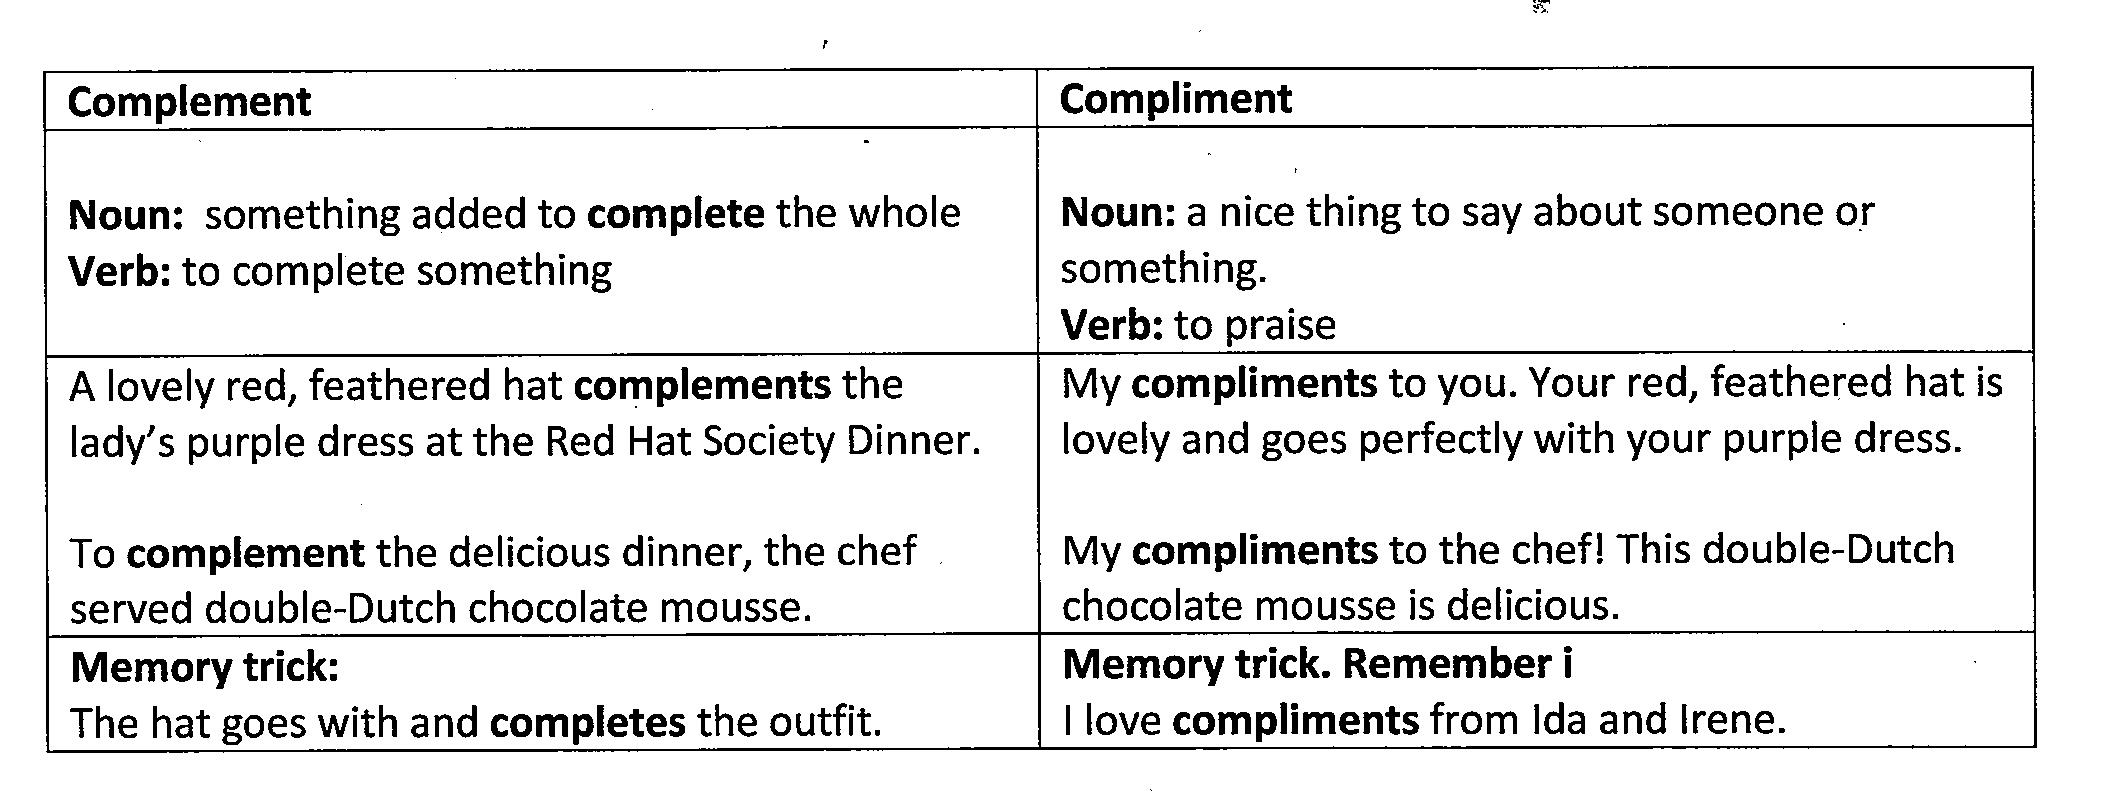 C Is For Complements And Compliments So What Who Cares